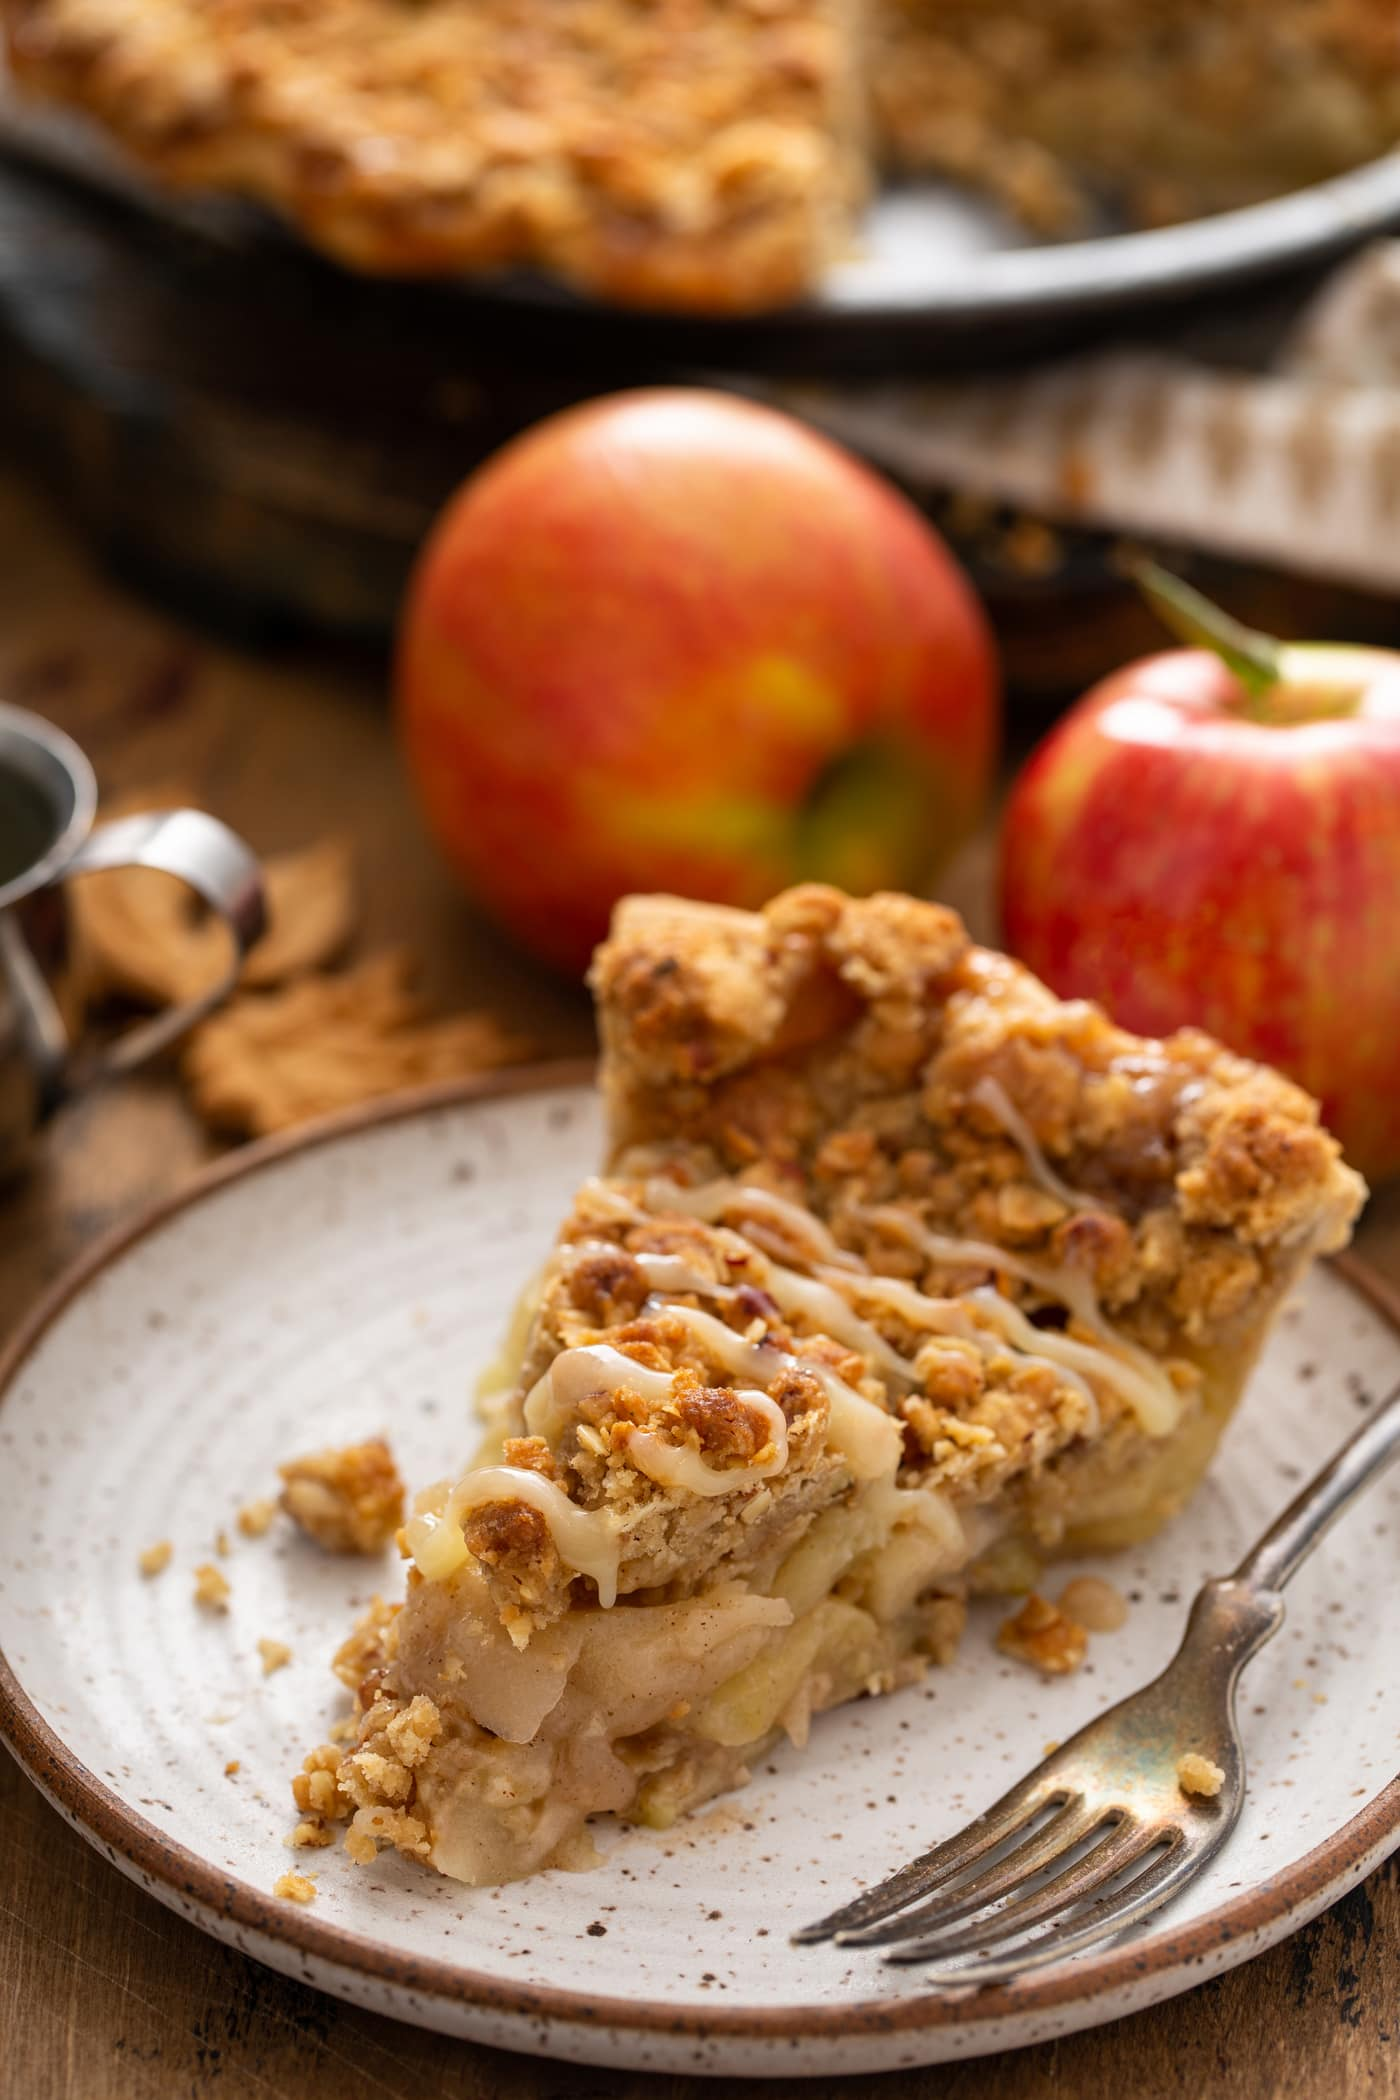 A slice of Dutch apple pie with a drizzle of white chocolate butter sauce over the top. Two apples are in the background.,